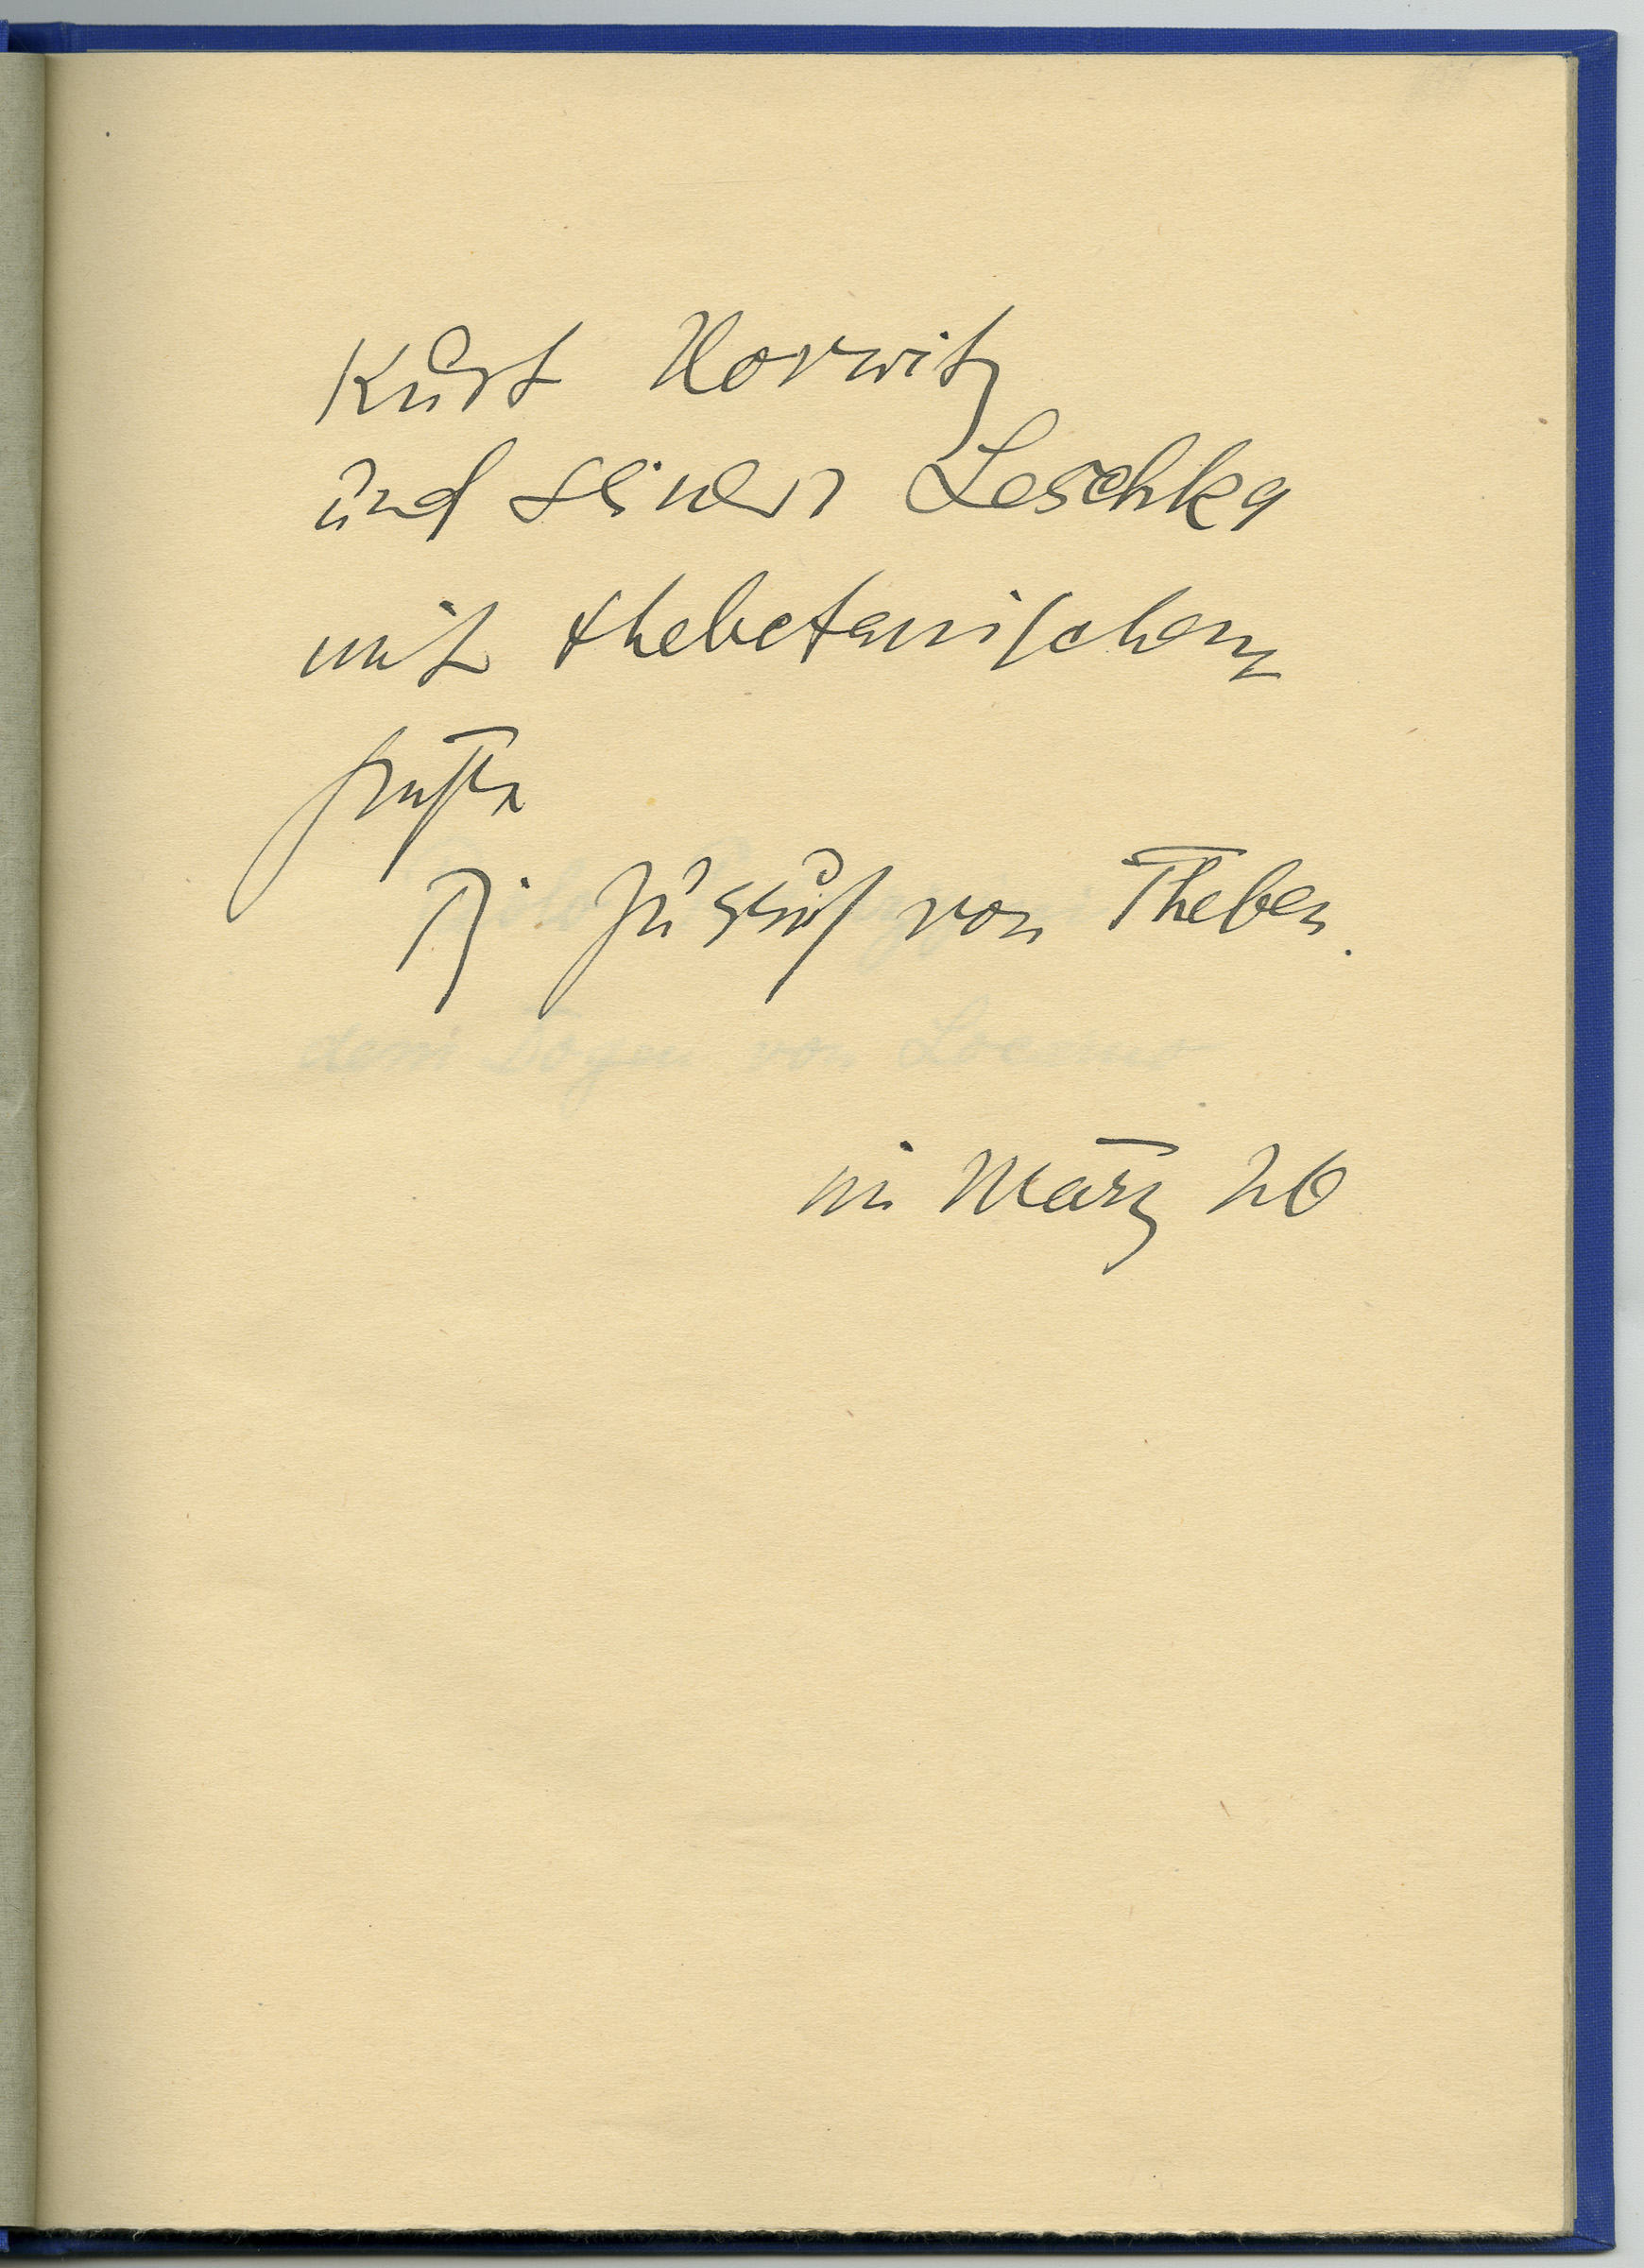 »The Bond of Wild Jews« from Thebes. Poems and Lithographs (dedication)